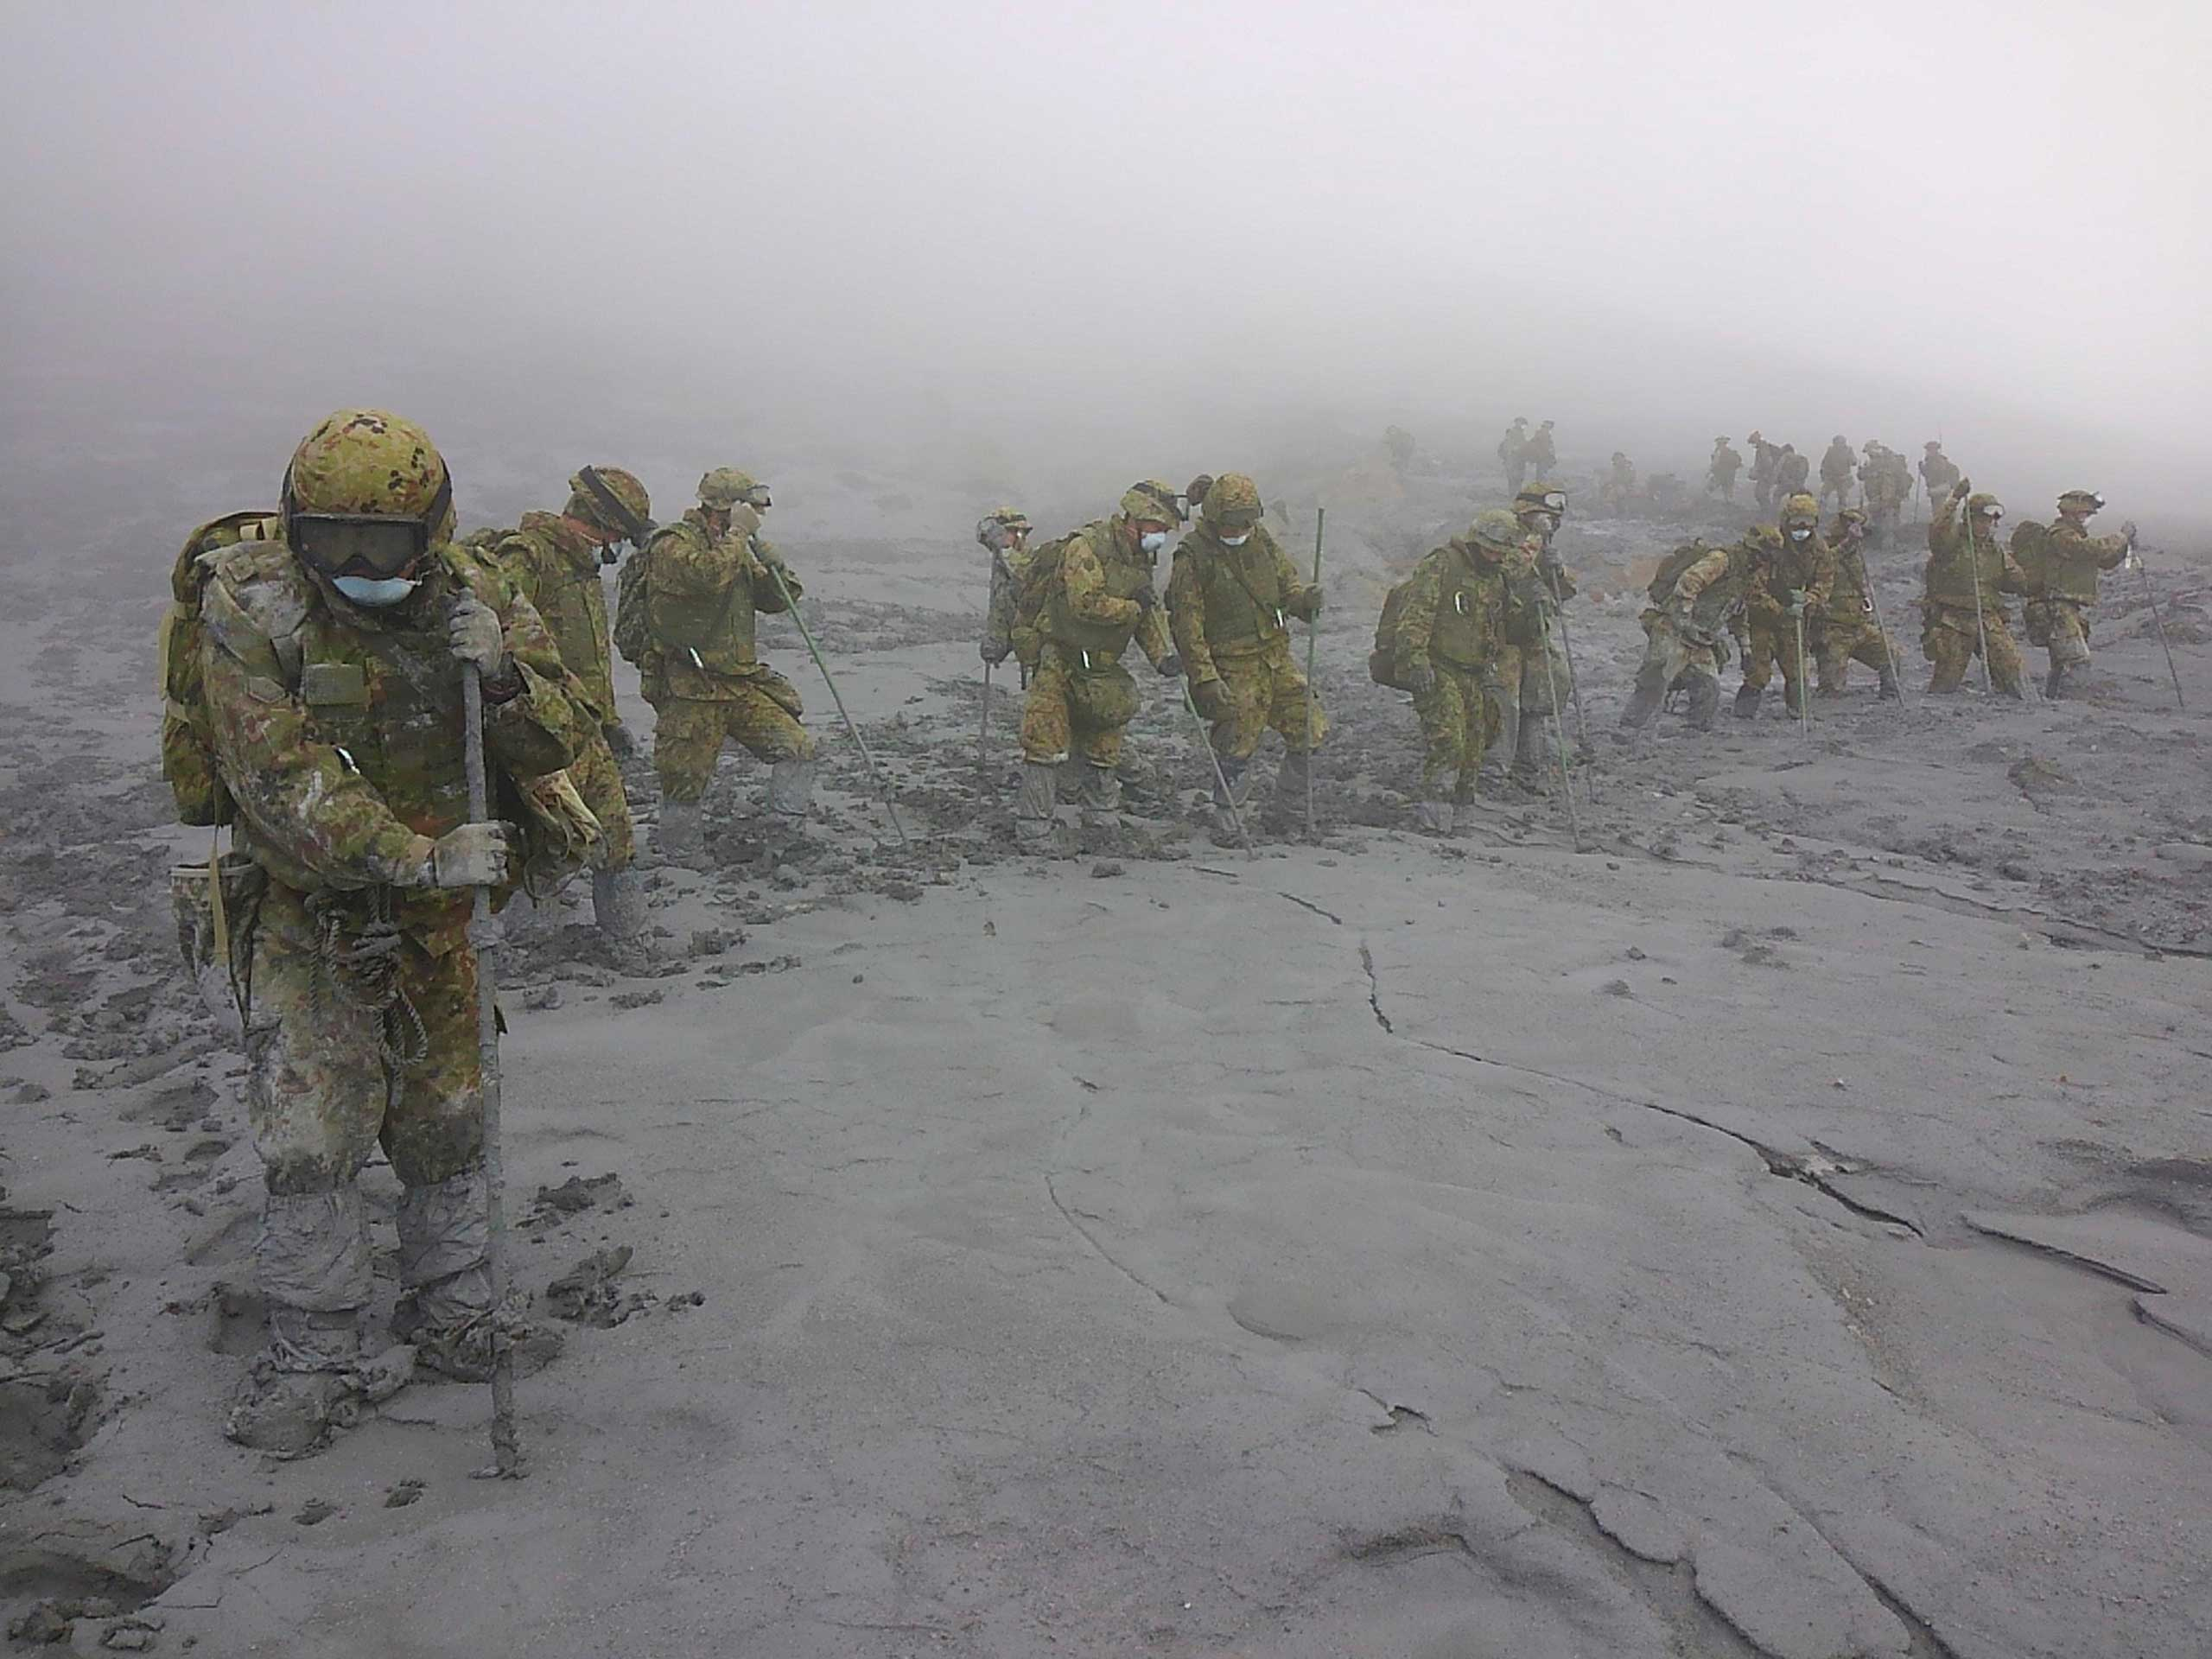 Oct. 7, 2014. Japan Self-Defense Force (JSDF) soldiers conduct rescue operations on Mount Ontake, which erupted September 27, 2014 and straddles Nagano and Gifu prefectures in central Japan.